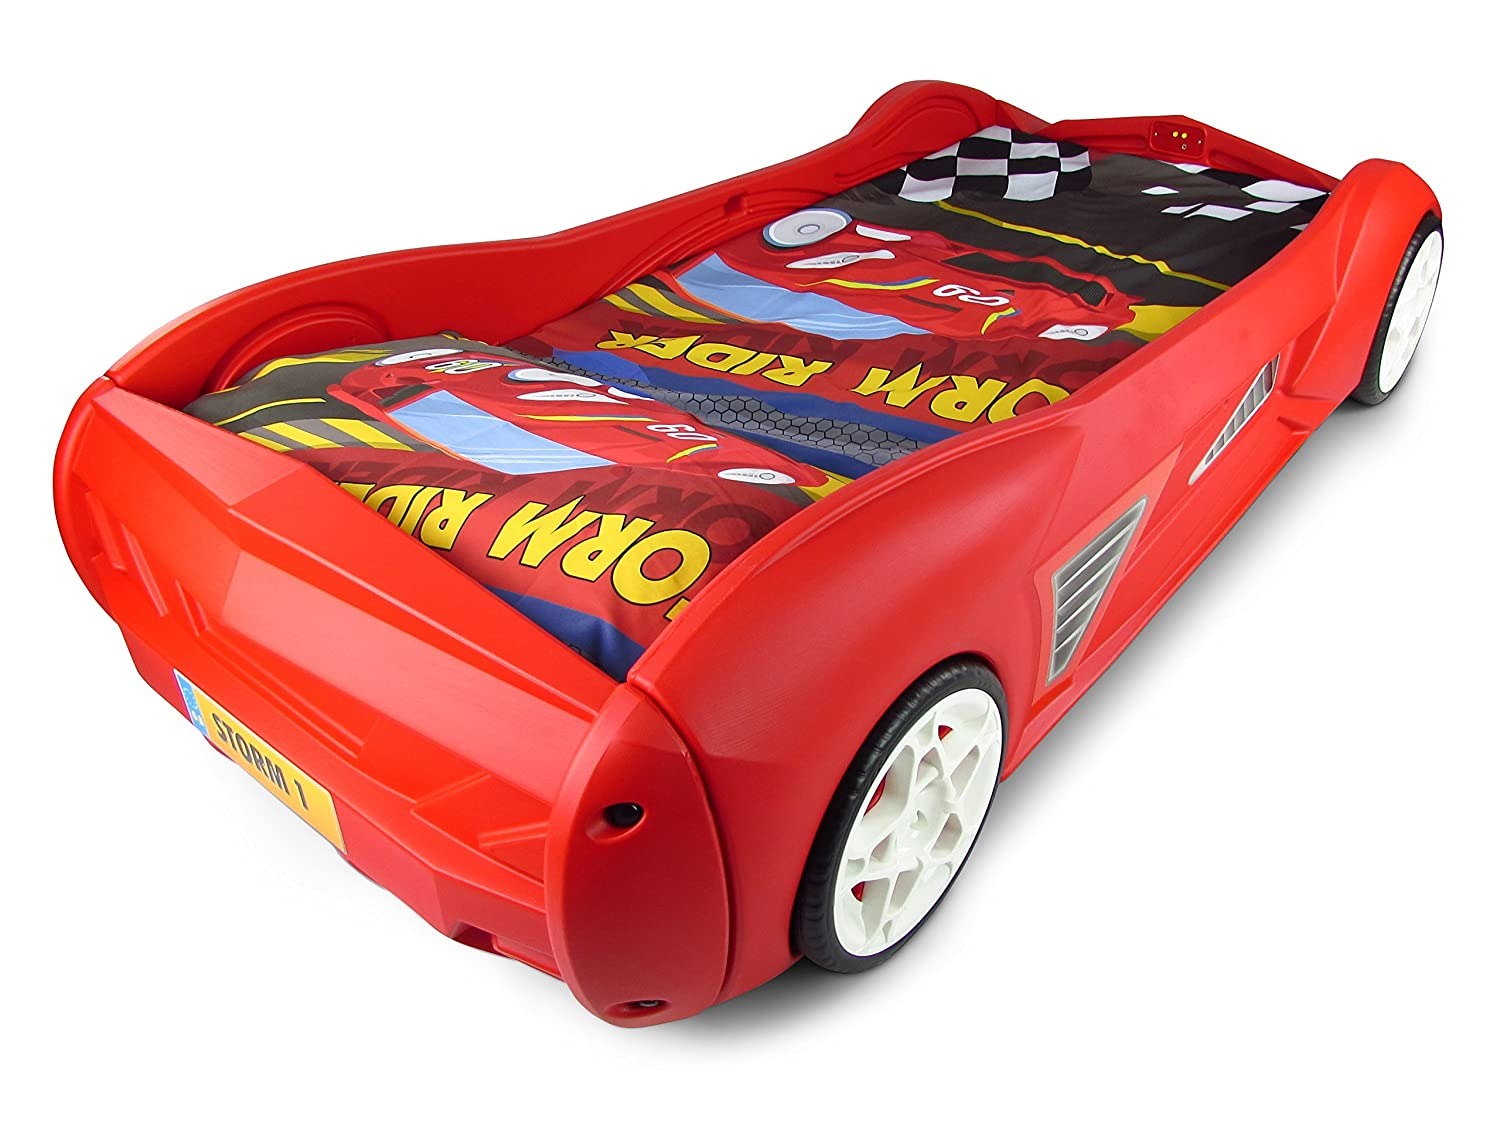 Storm Childrens Racing Car Bed With Mattress: Amazon.co.uk: Kitchen U0026 Home